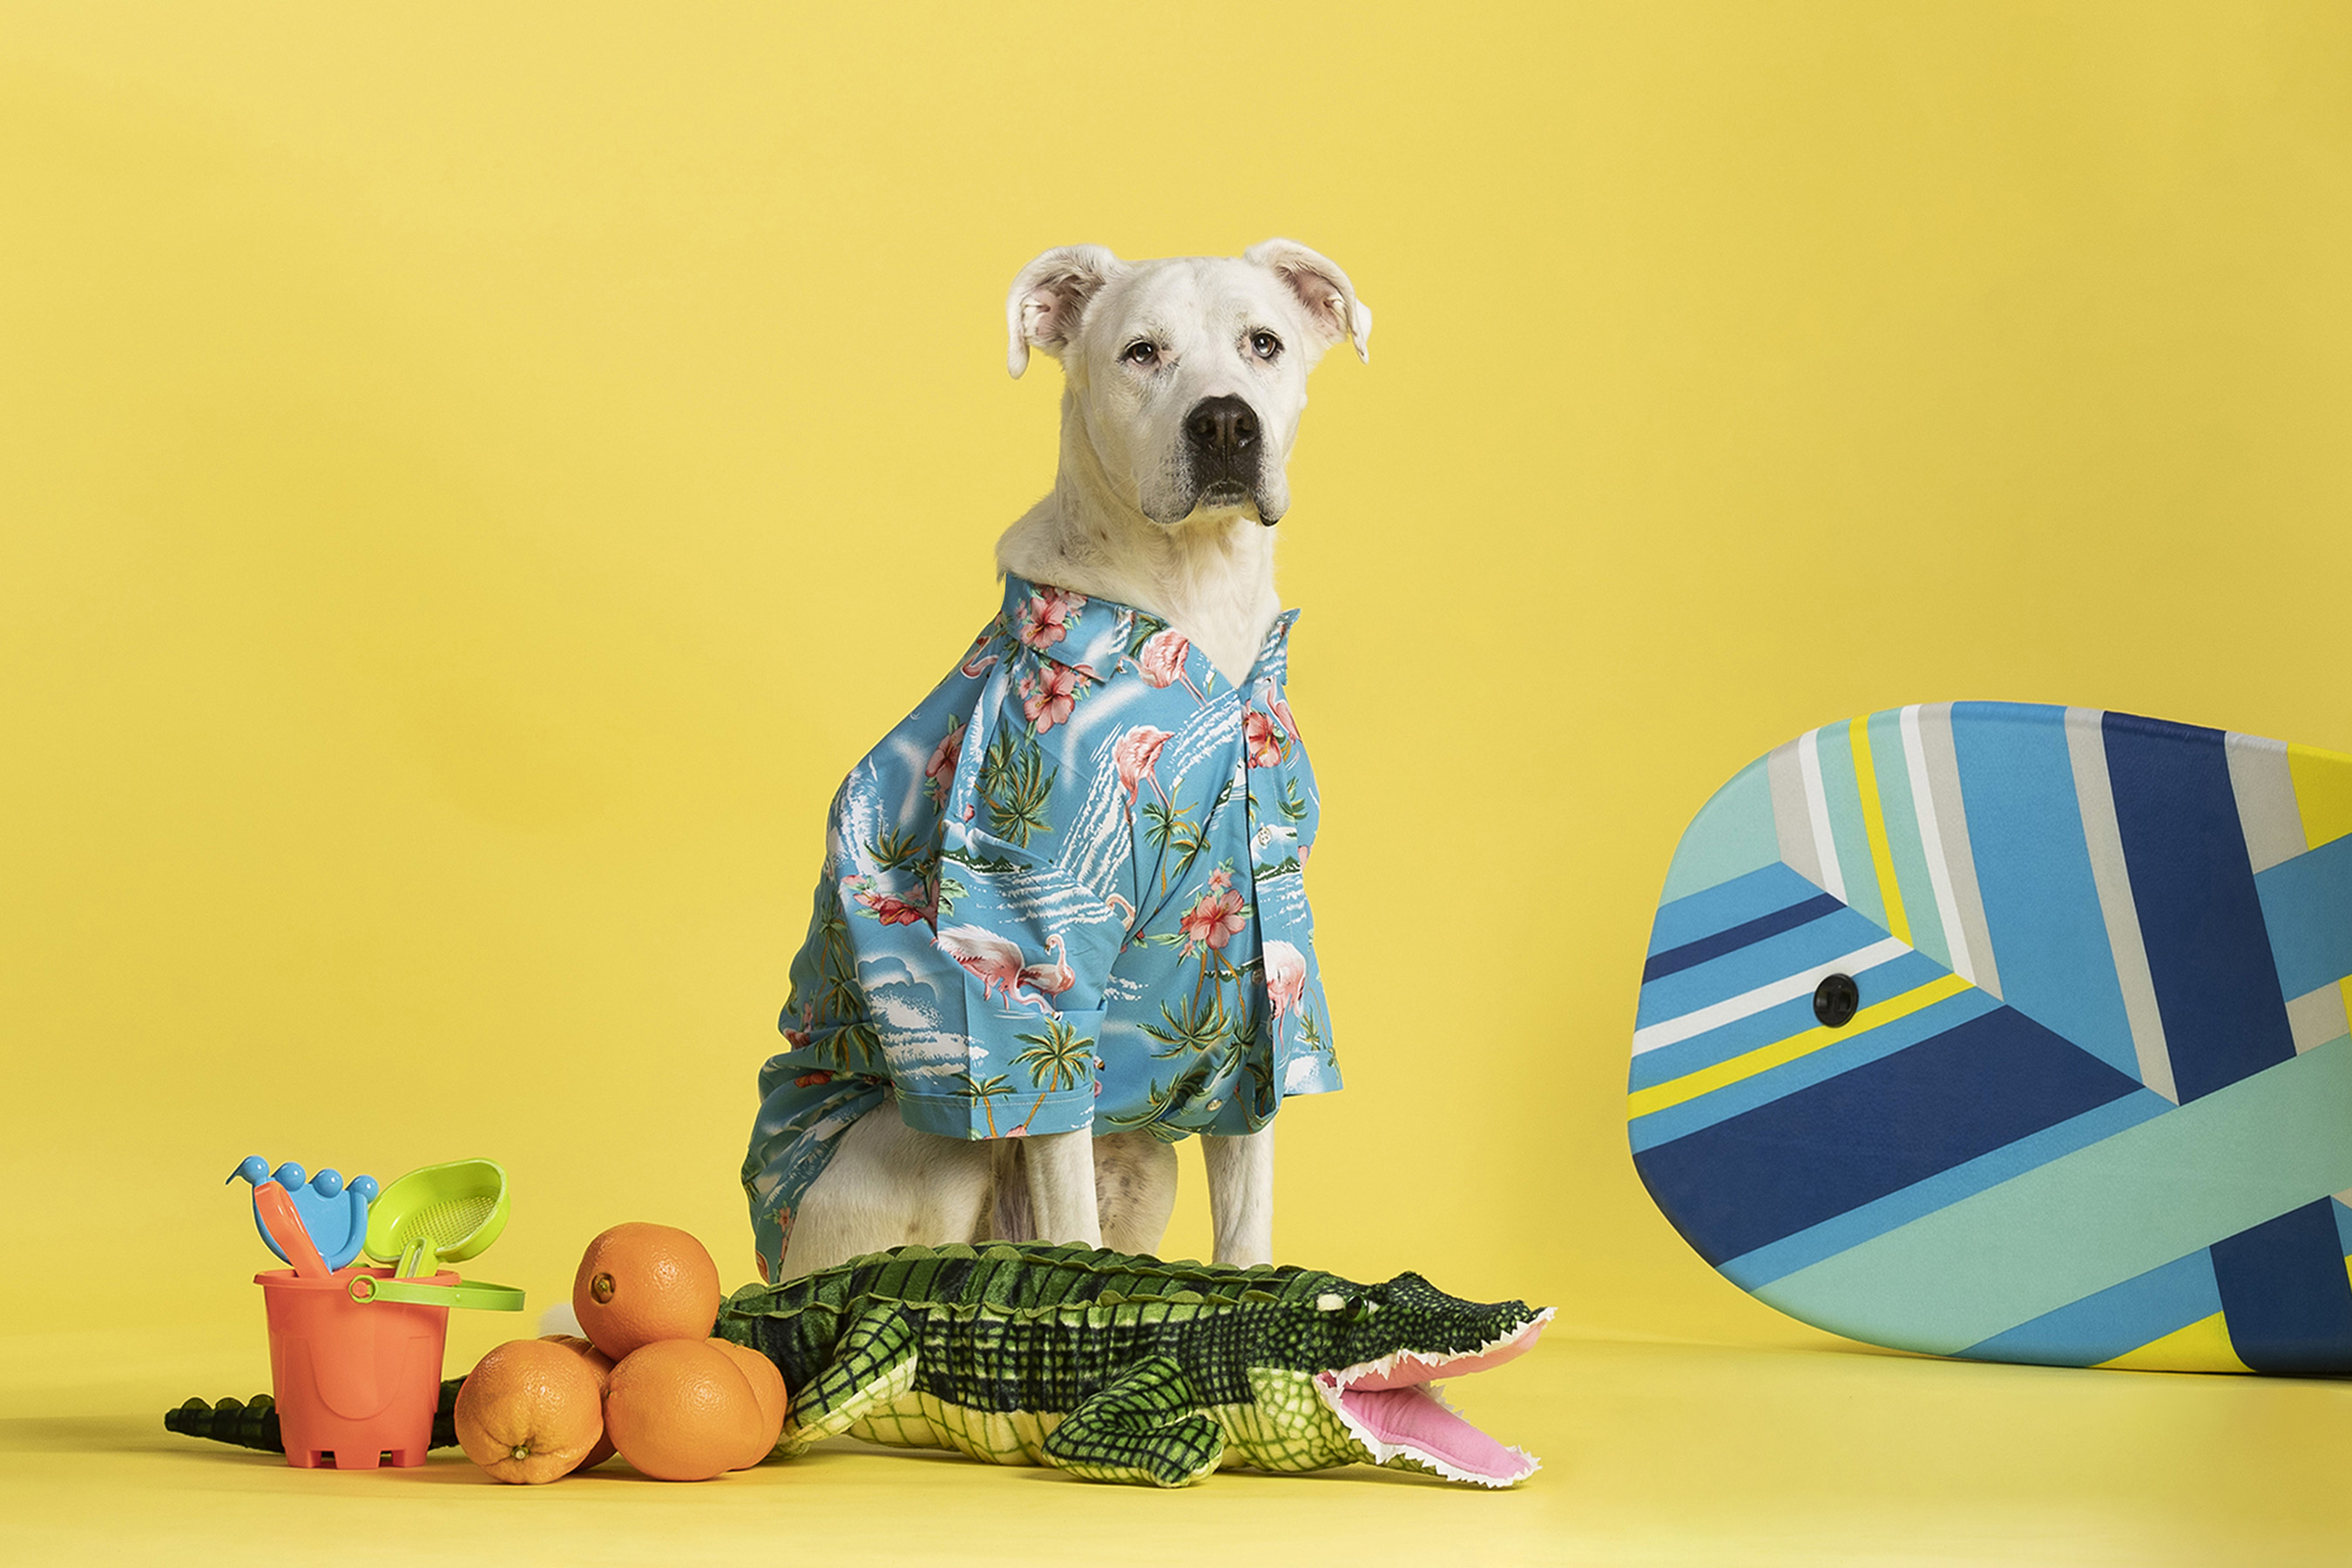 Let's Go! Expedia Celebrates the Dog Days of Summer with Big